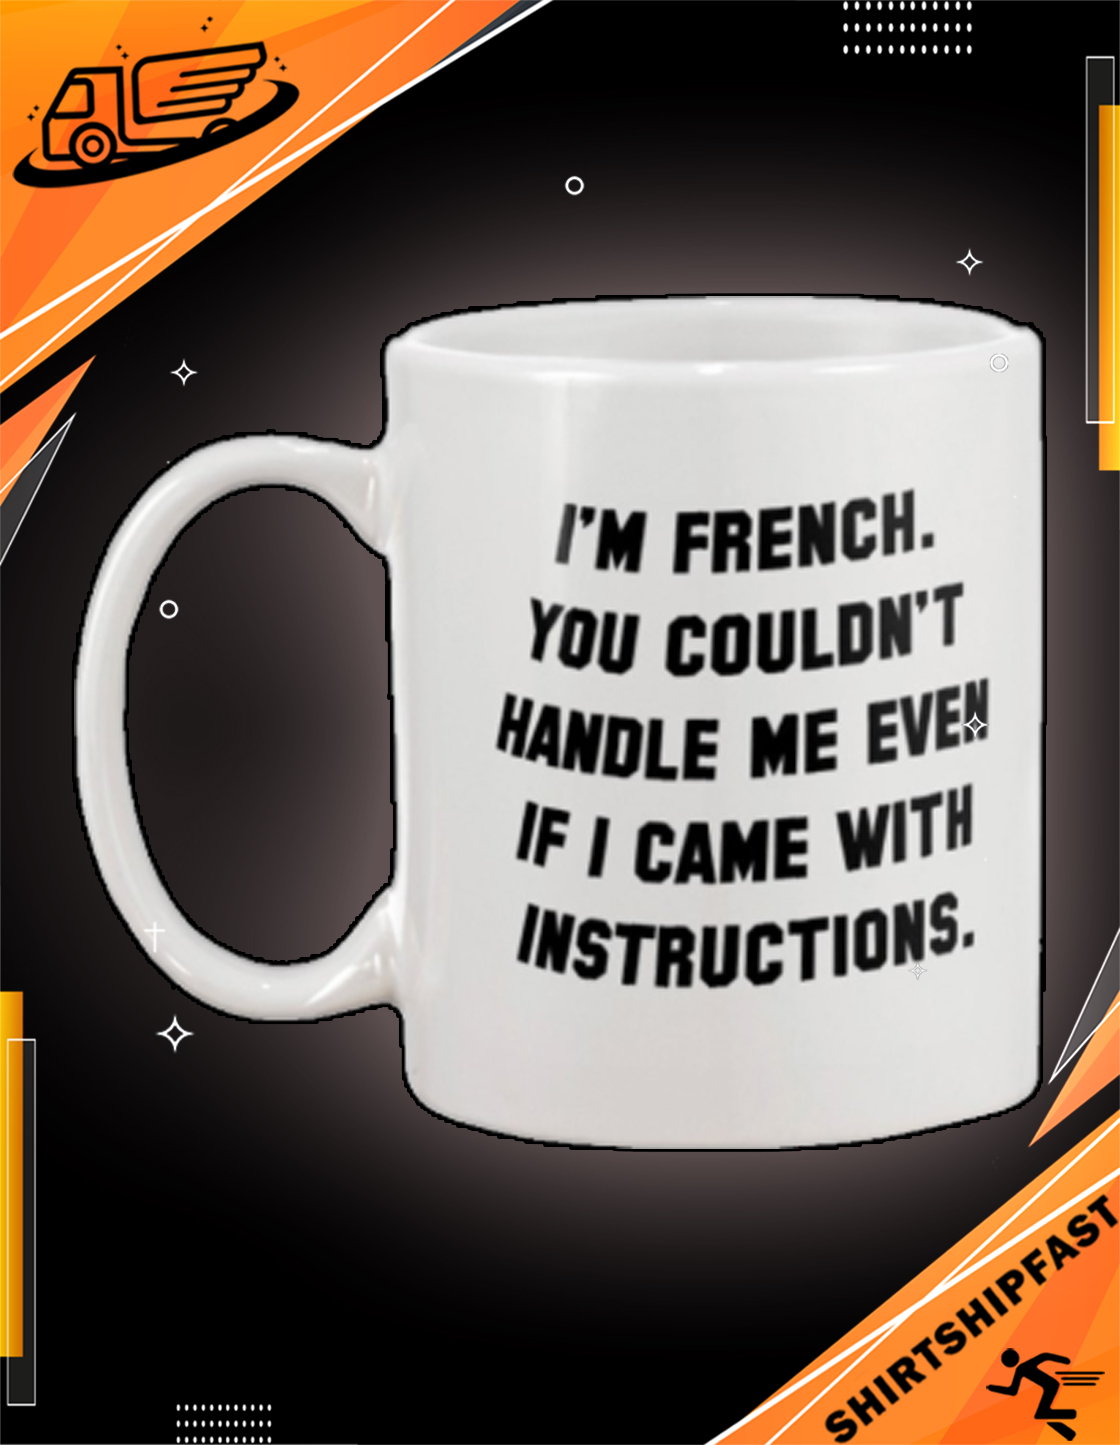 I'm French you couldn't handle me even if I came with intructions mug - Picture 3